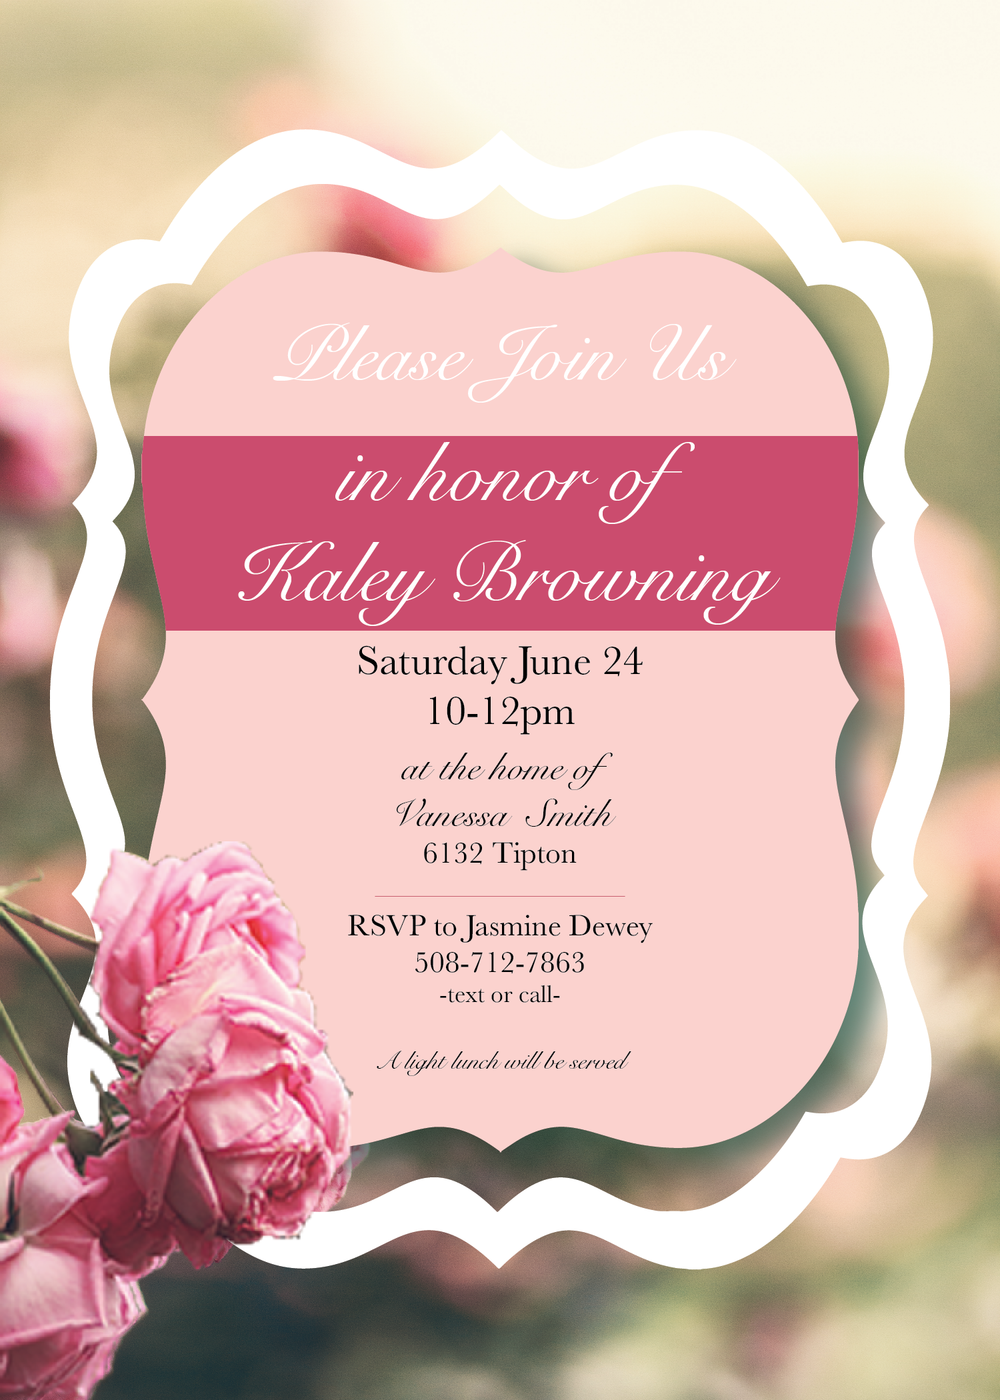 Wedding Shower Invitation.png